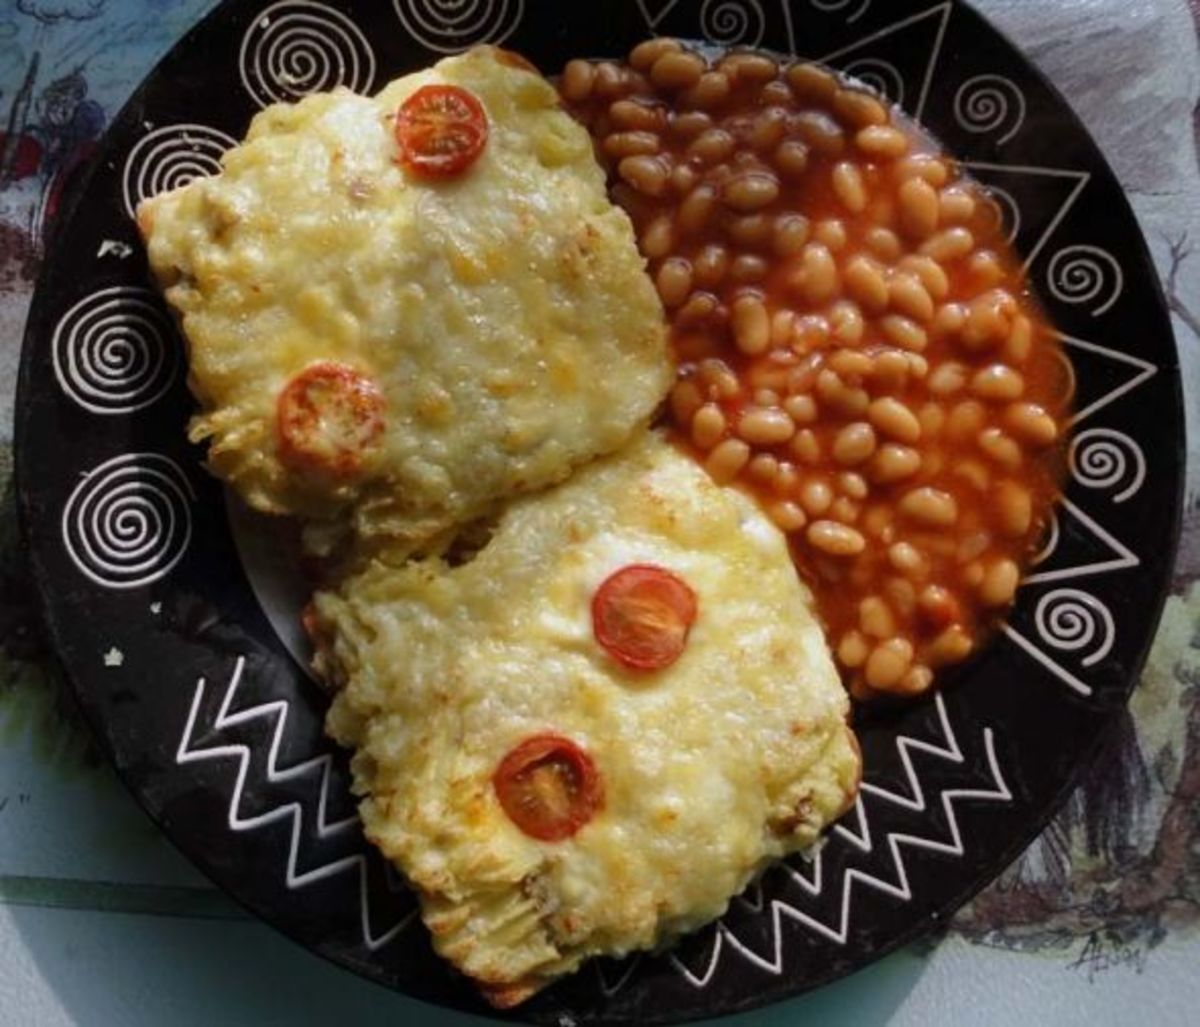 Mashed potato and cheese on toast